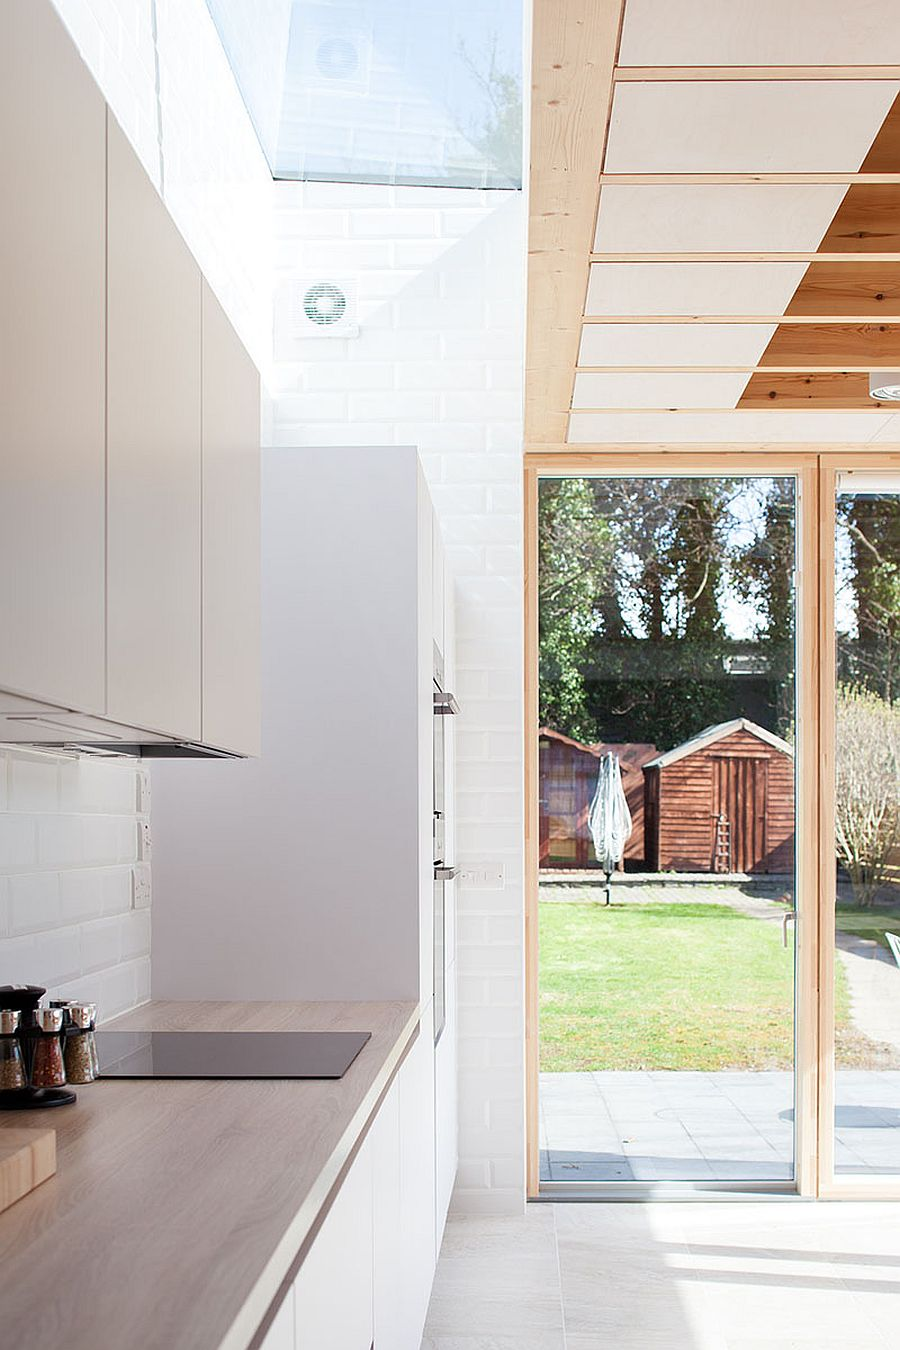 Skylights bring natural ventilation to the modern kitchen